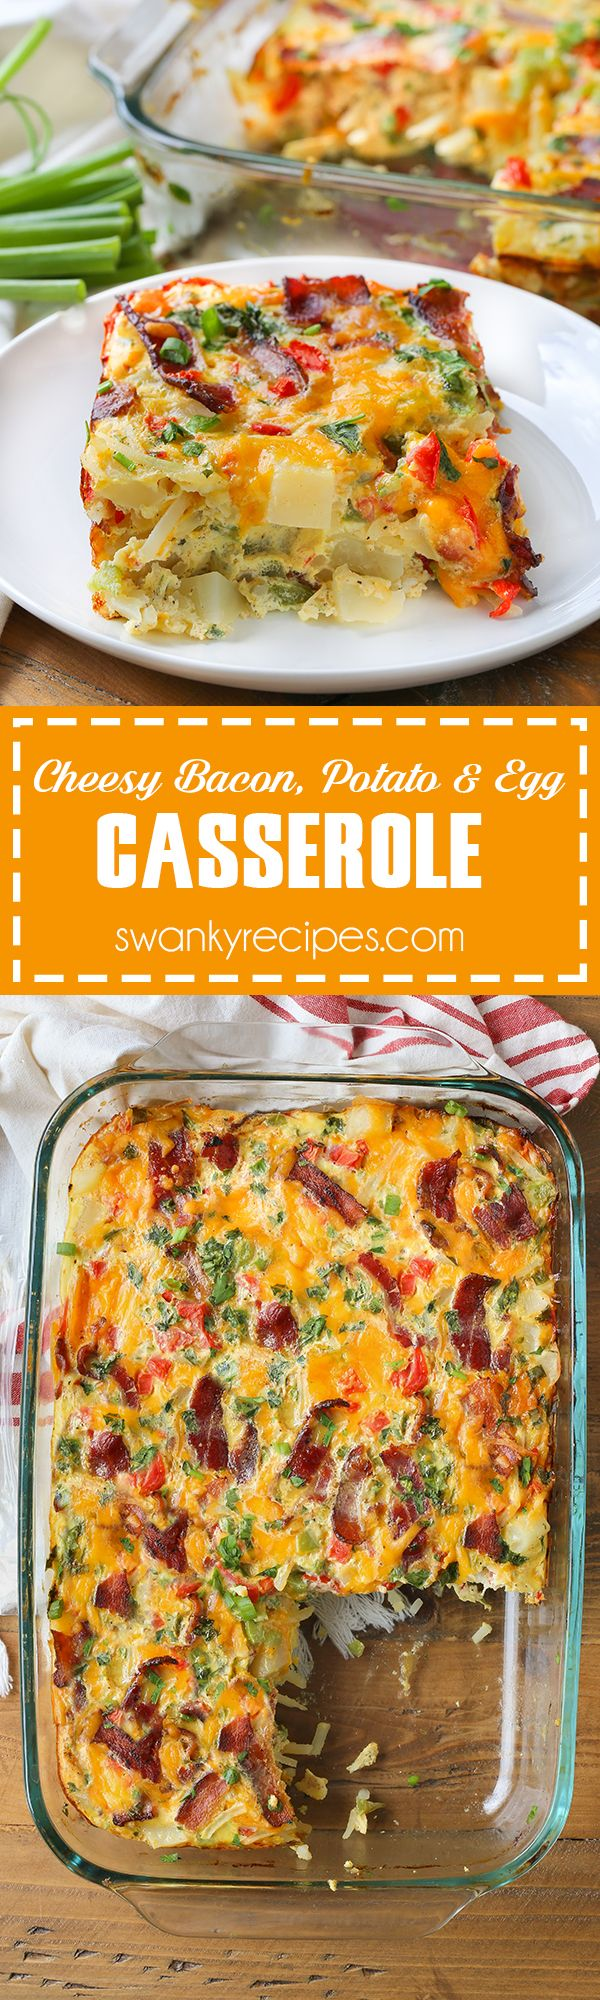 Cheesy Bacon, Potato and Egg Casserole - Quick, easy and packed full of flavor. This breakfast casserole recipe is just what your morning needs! Made with fresh vegetables, crispy bacon, cheese and eggs, this dish is made to feed a crowd.